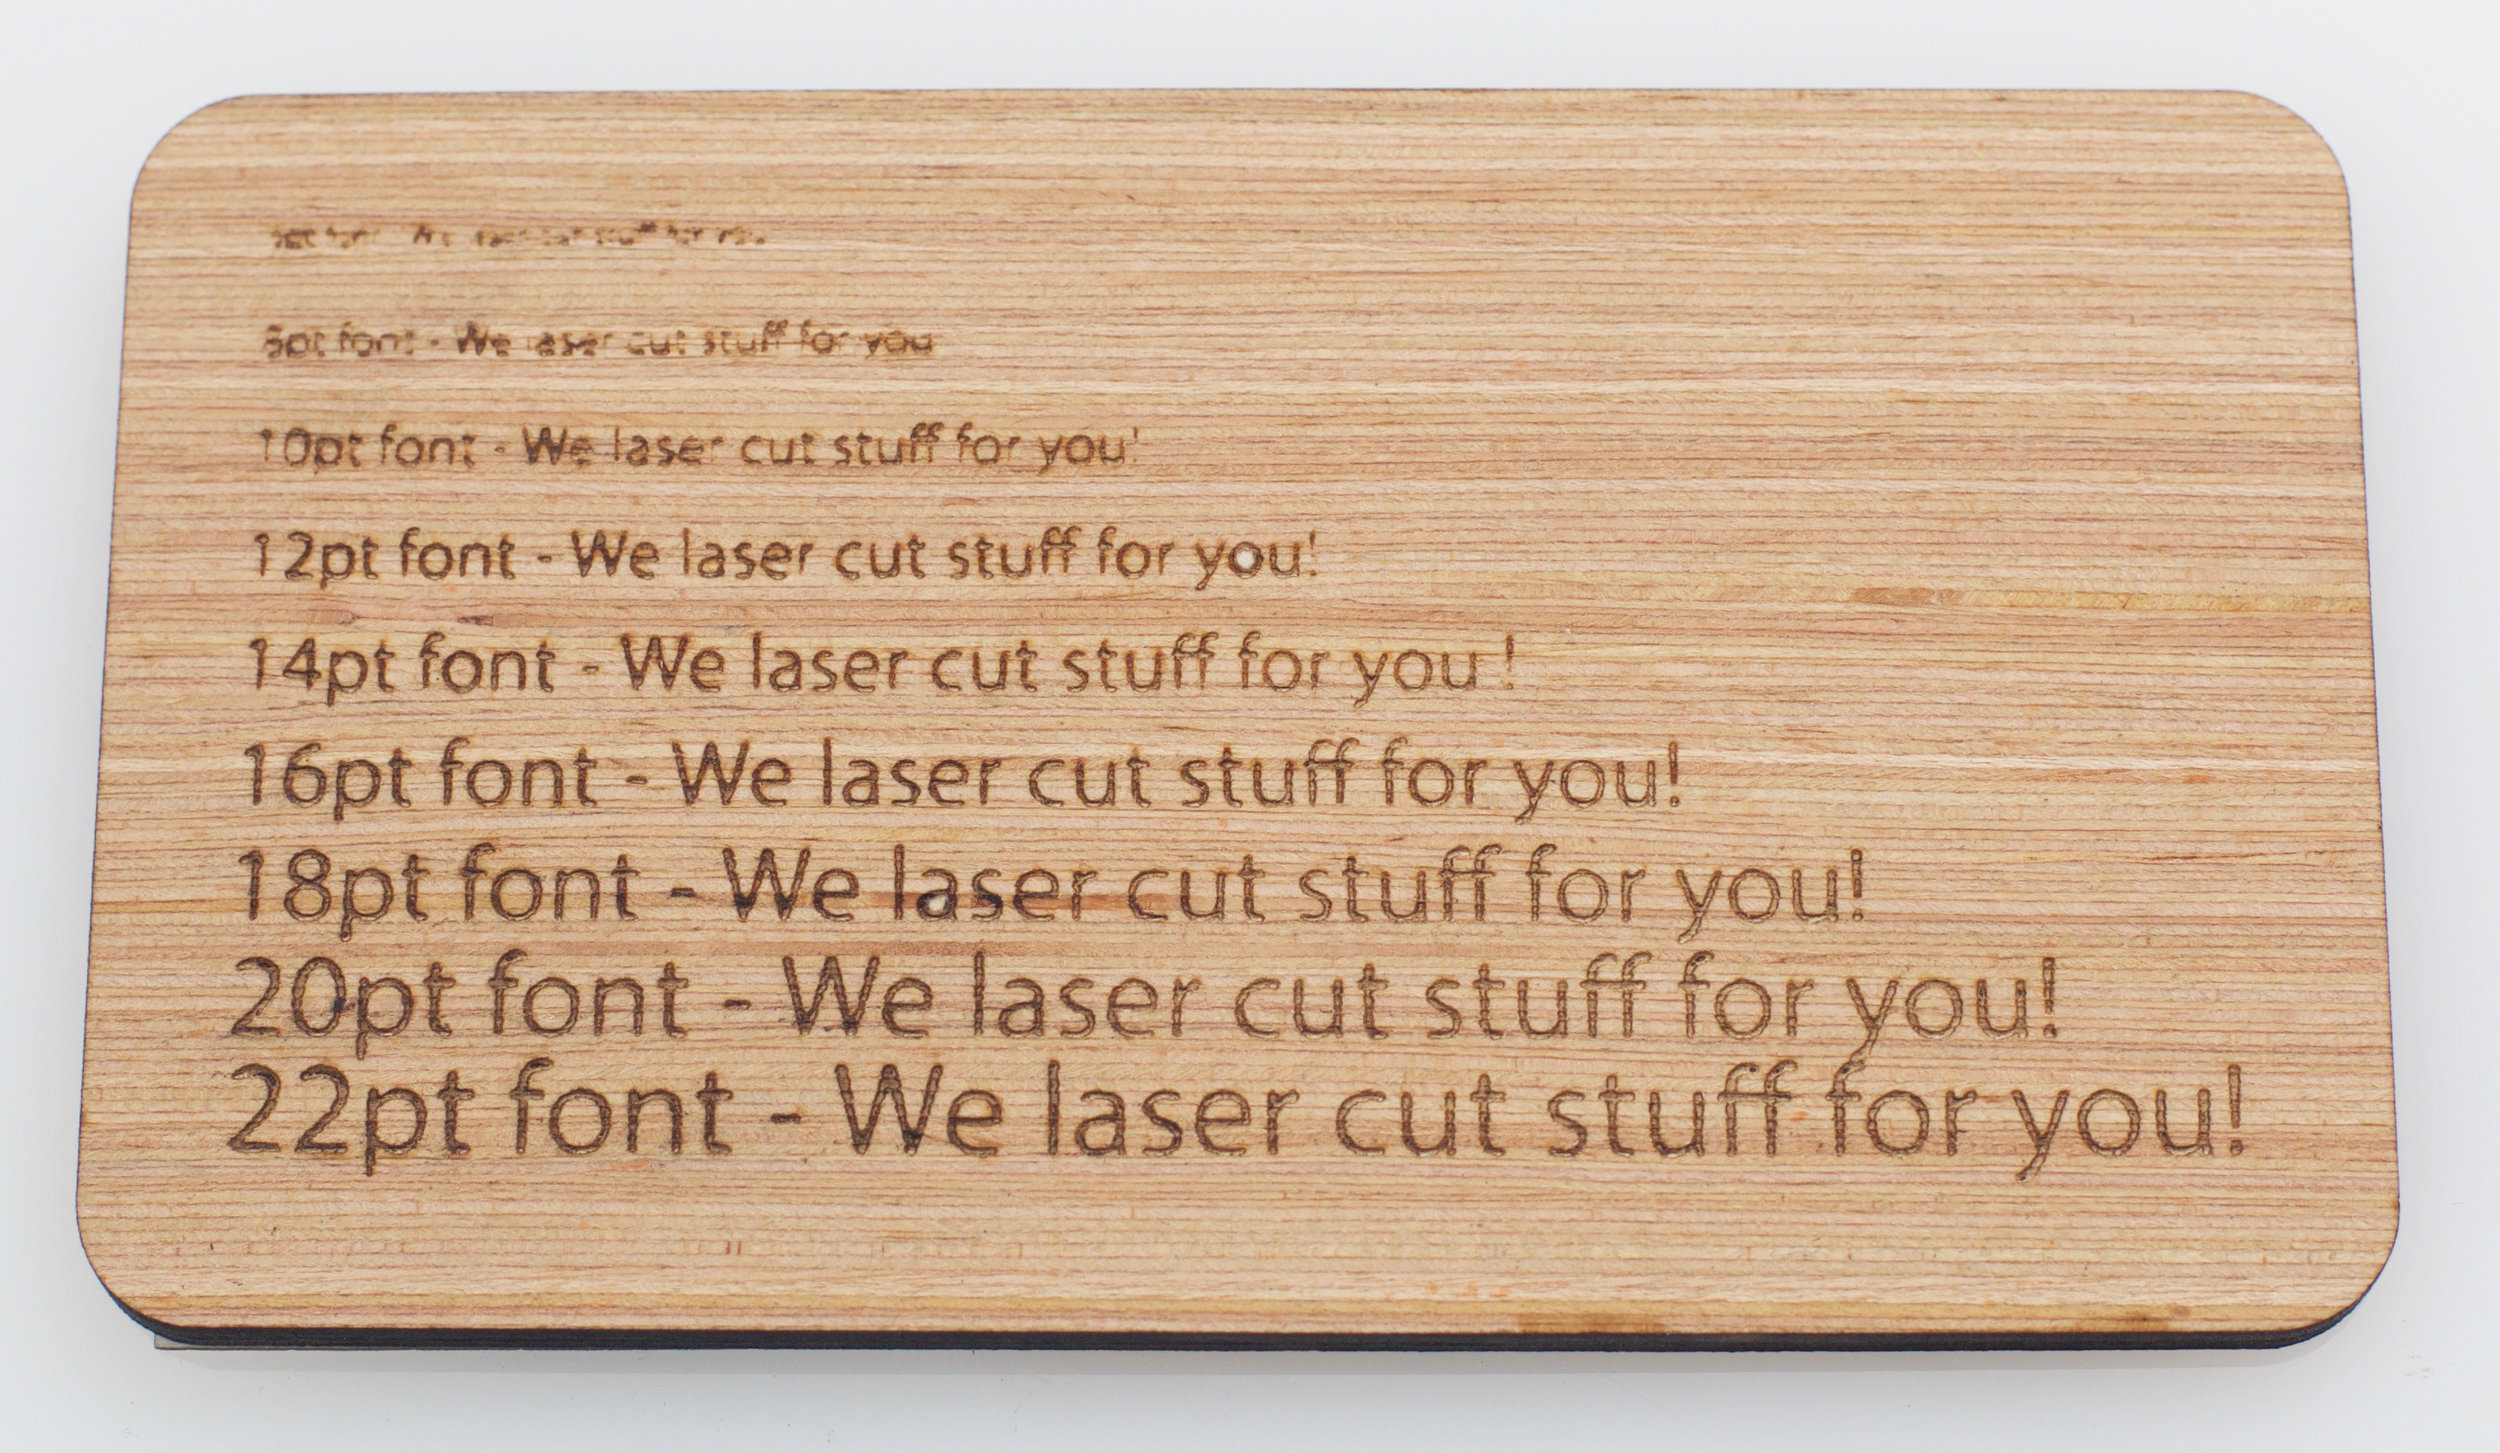 Laser Cut Text on Bamboo Plywood